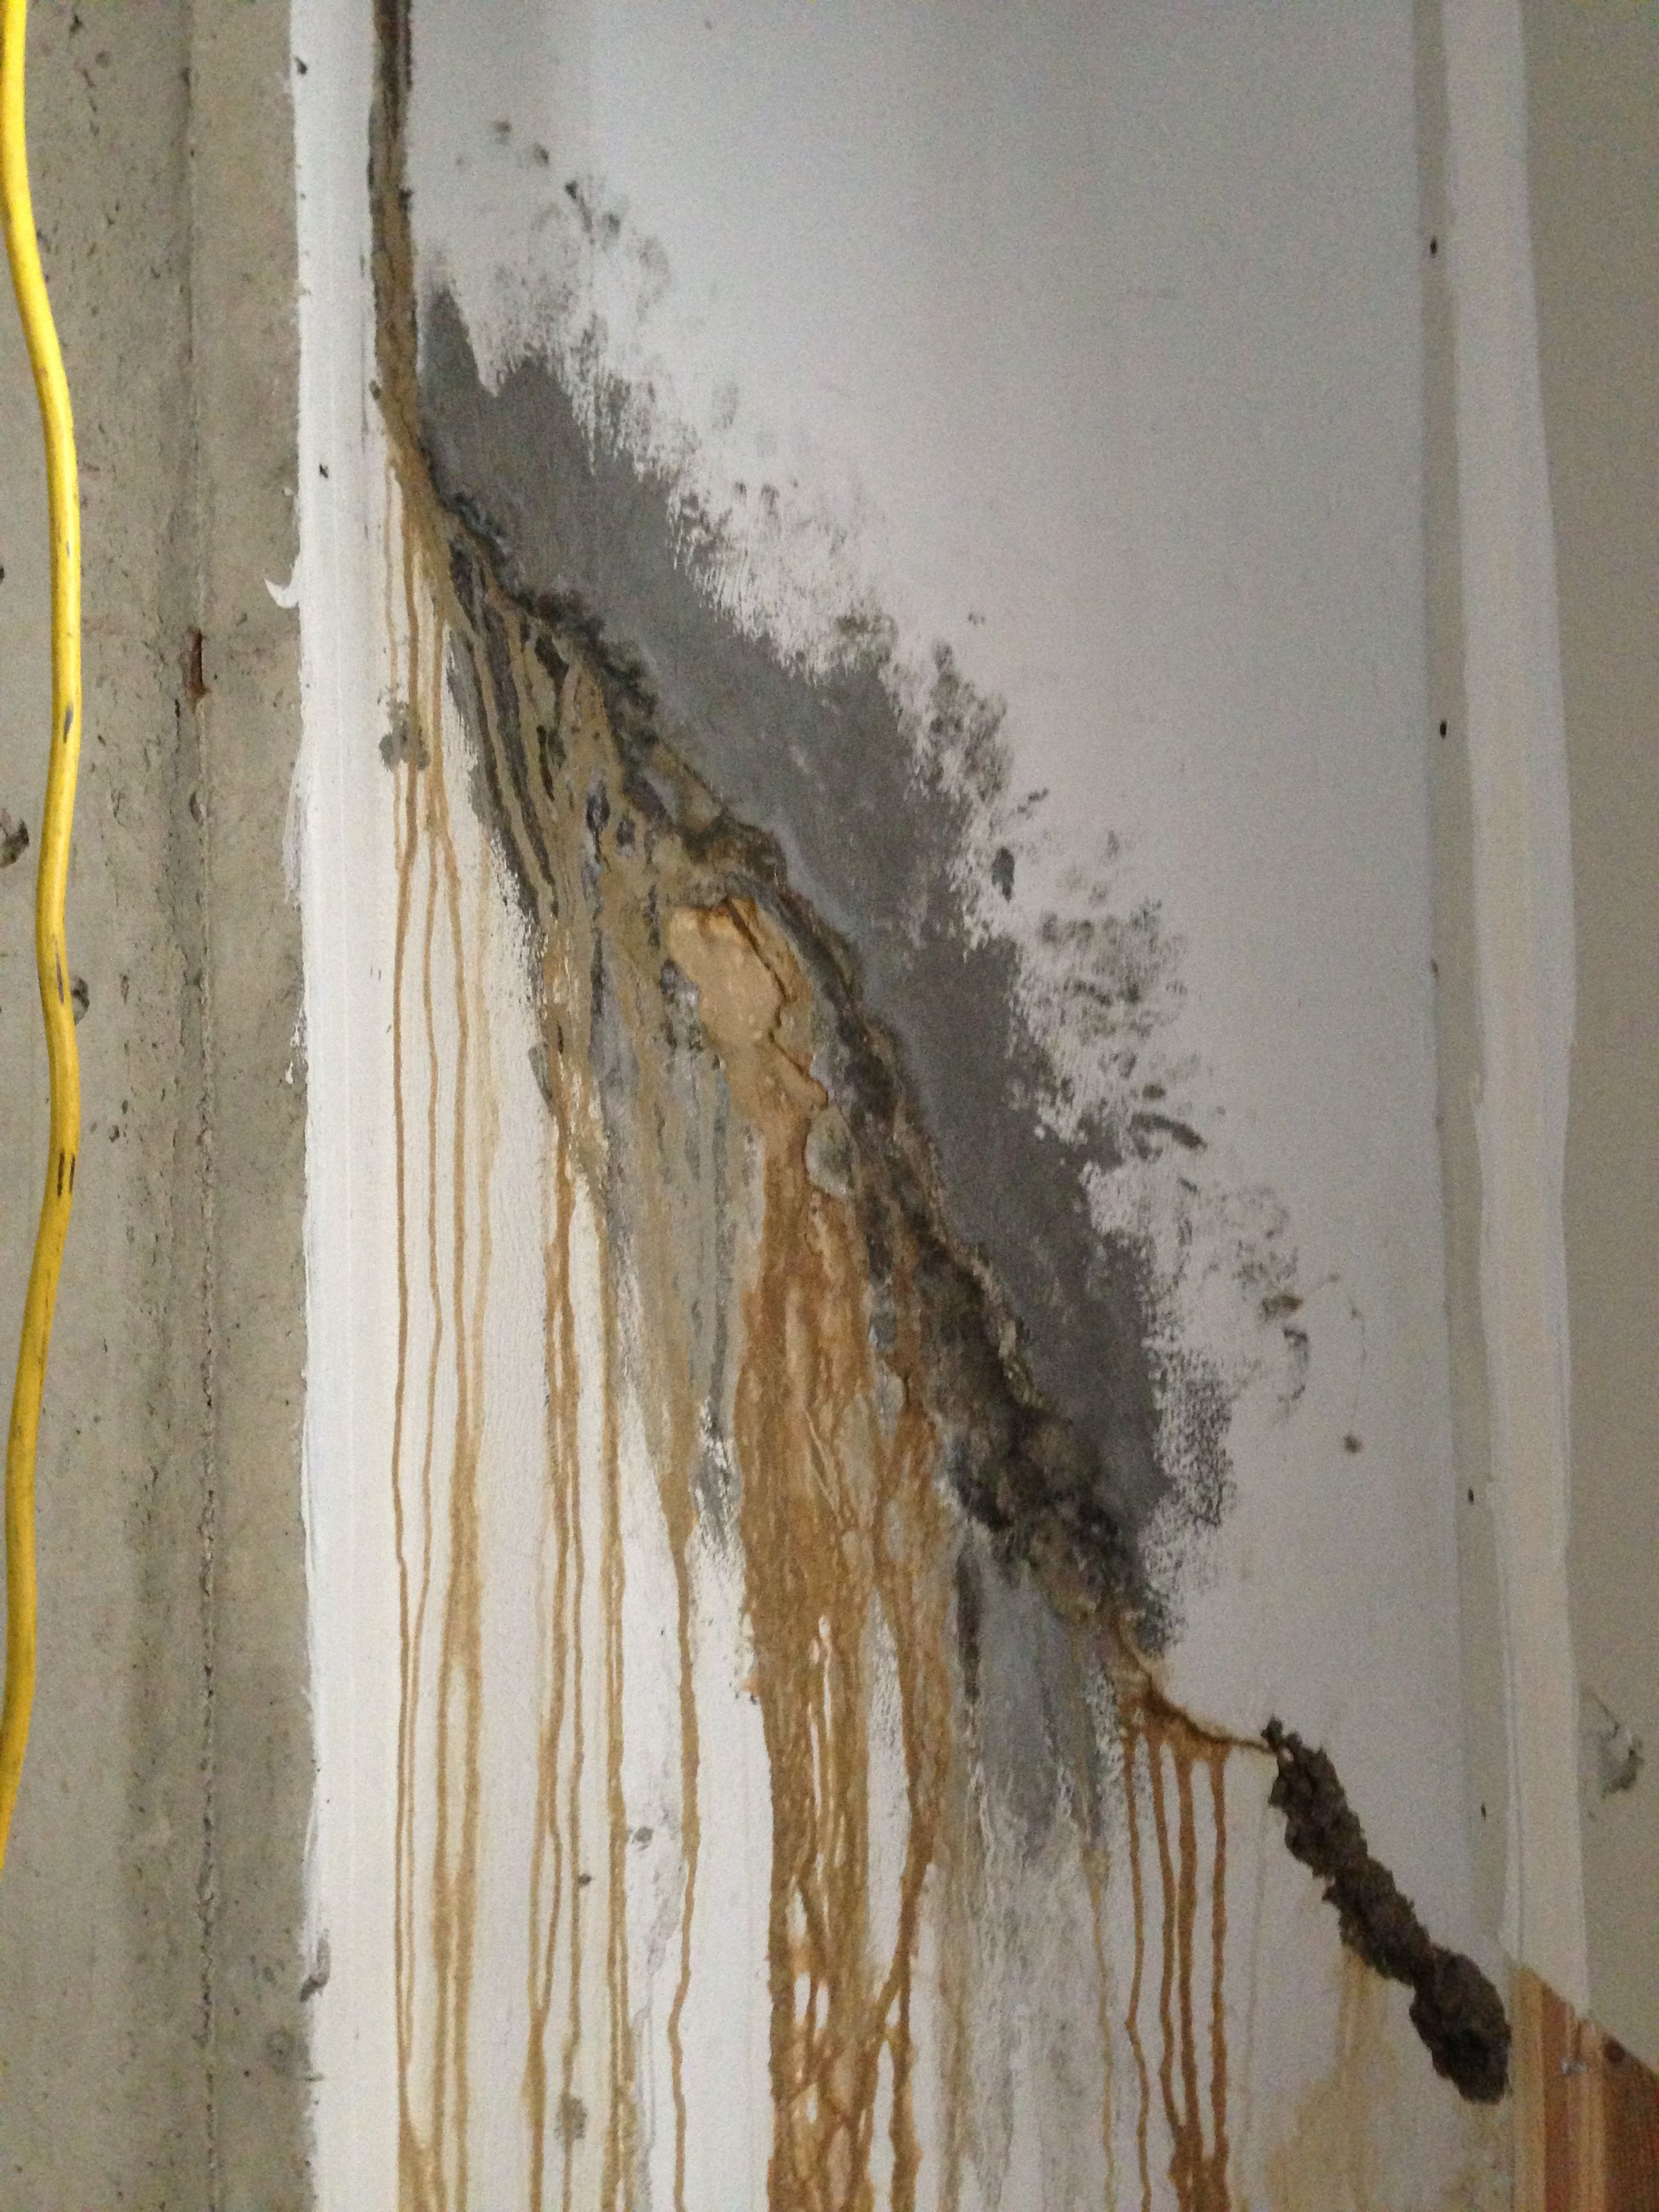 Epoxy Injection Poured Concrete Basement Wall Crack And Leaking In Saline Mi